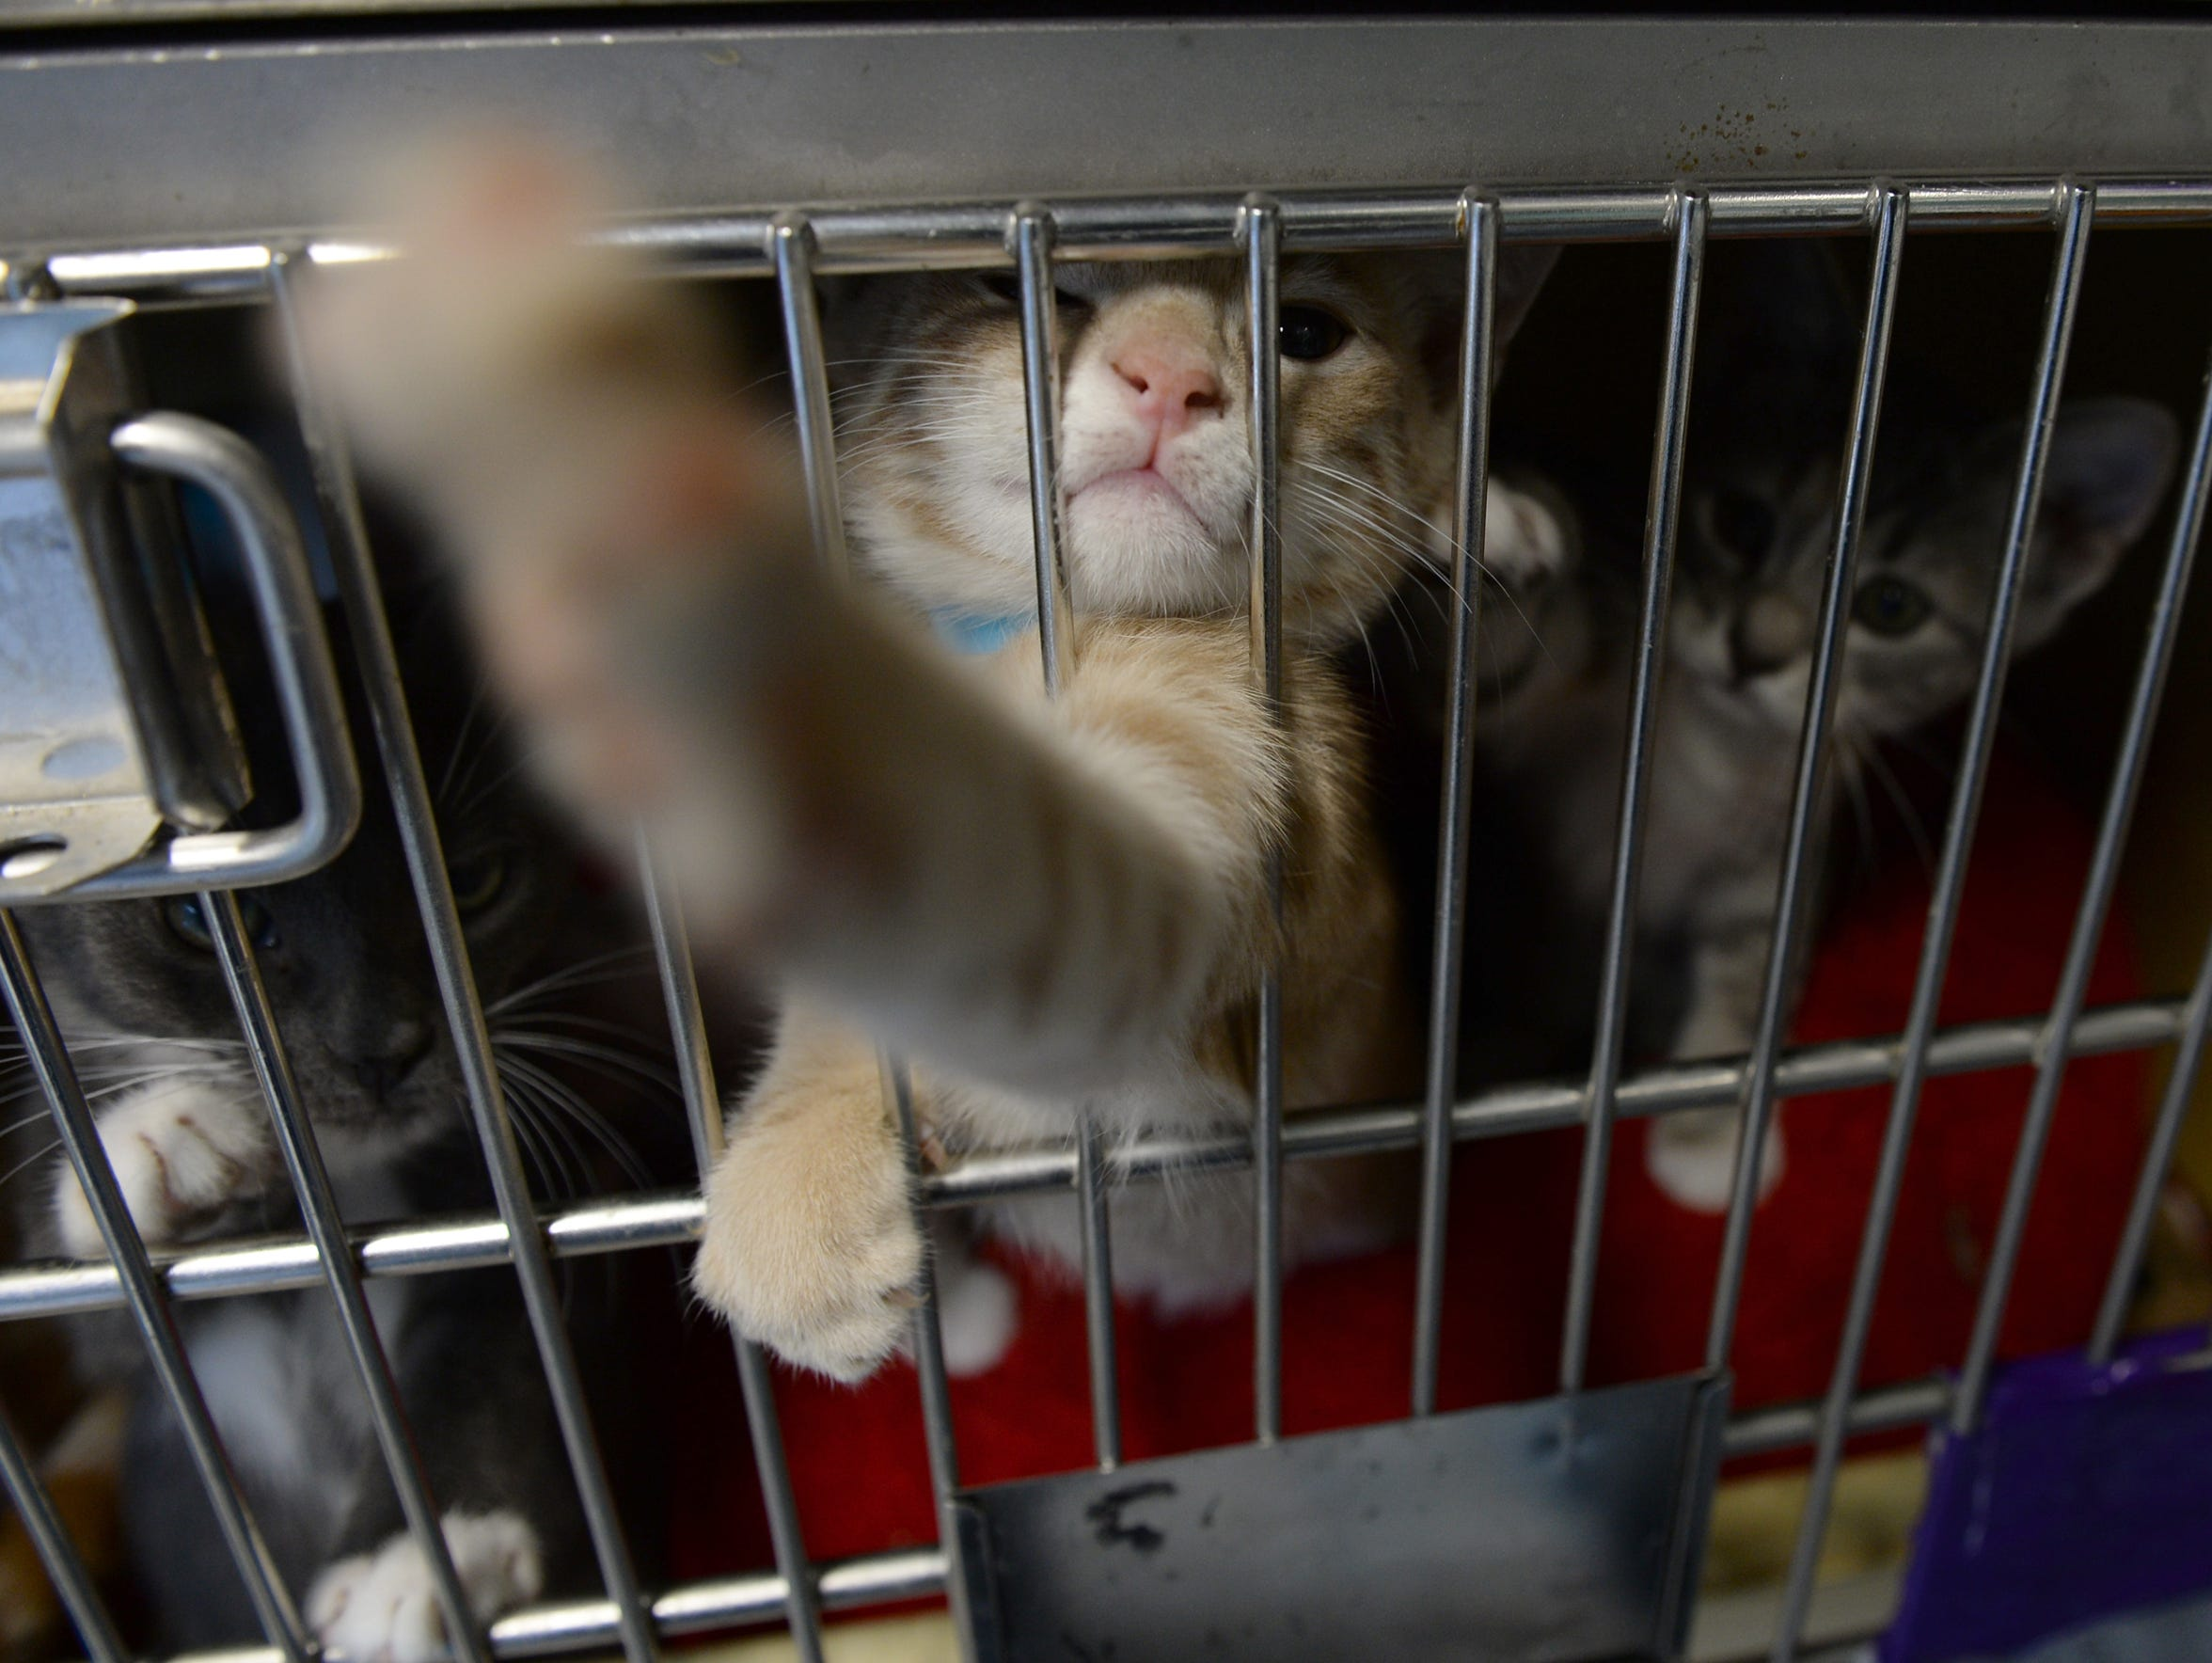 With the help of volunteers 48 kittens are transported